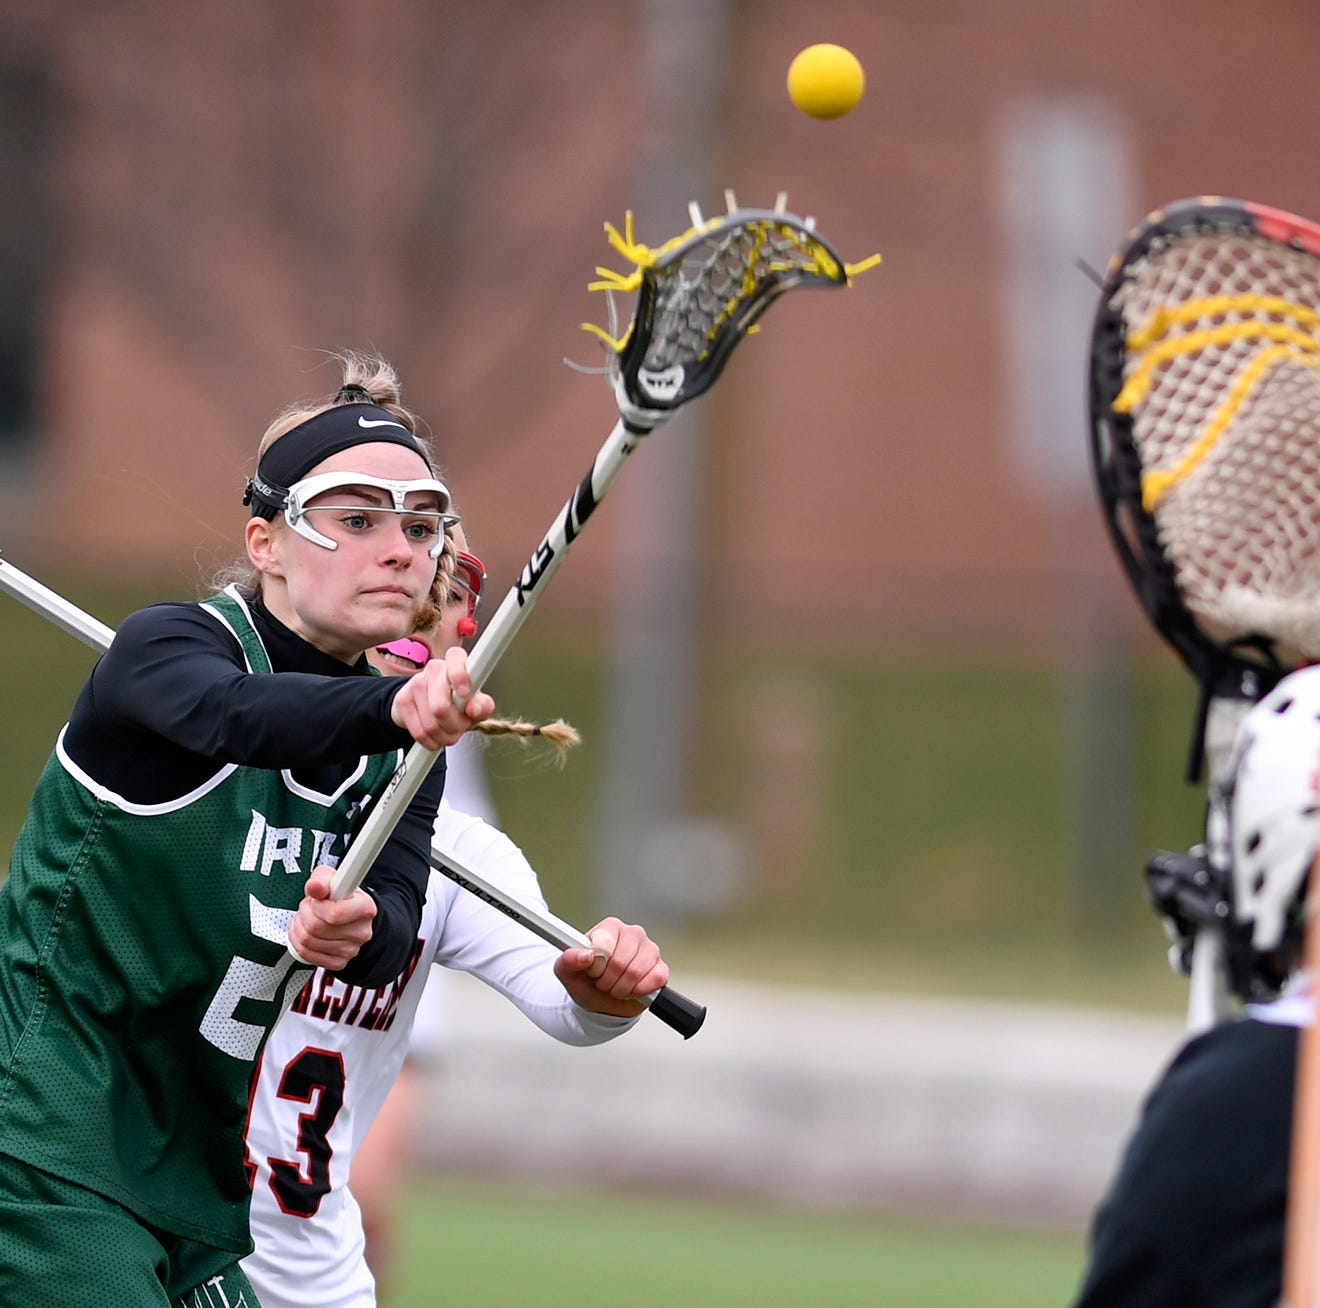 Unbeaten York Catholic teams enter York-Adams League lacrosse playoffs as No. 1 seeds